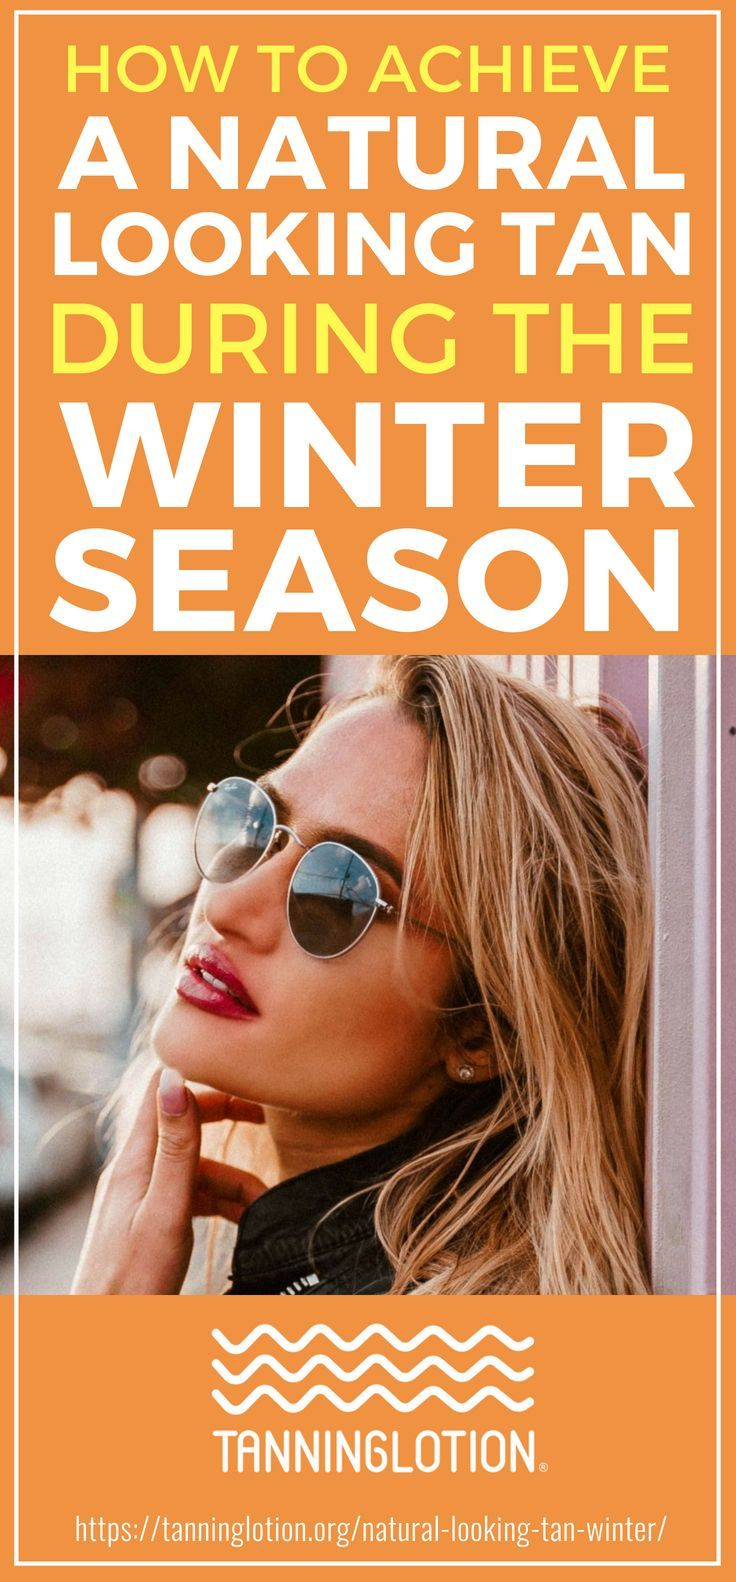 How to Have a NaturalLooking Tan During the Winter Season